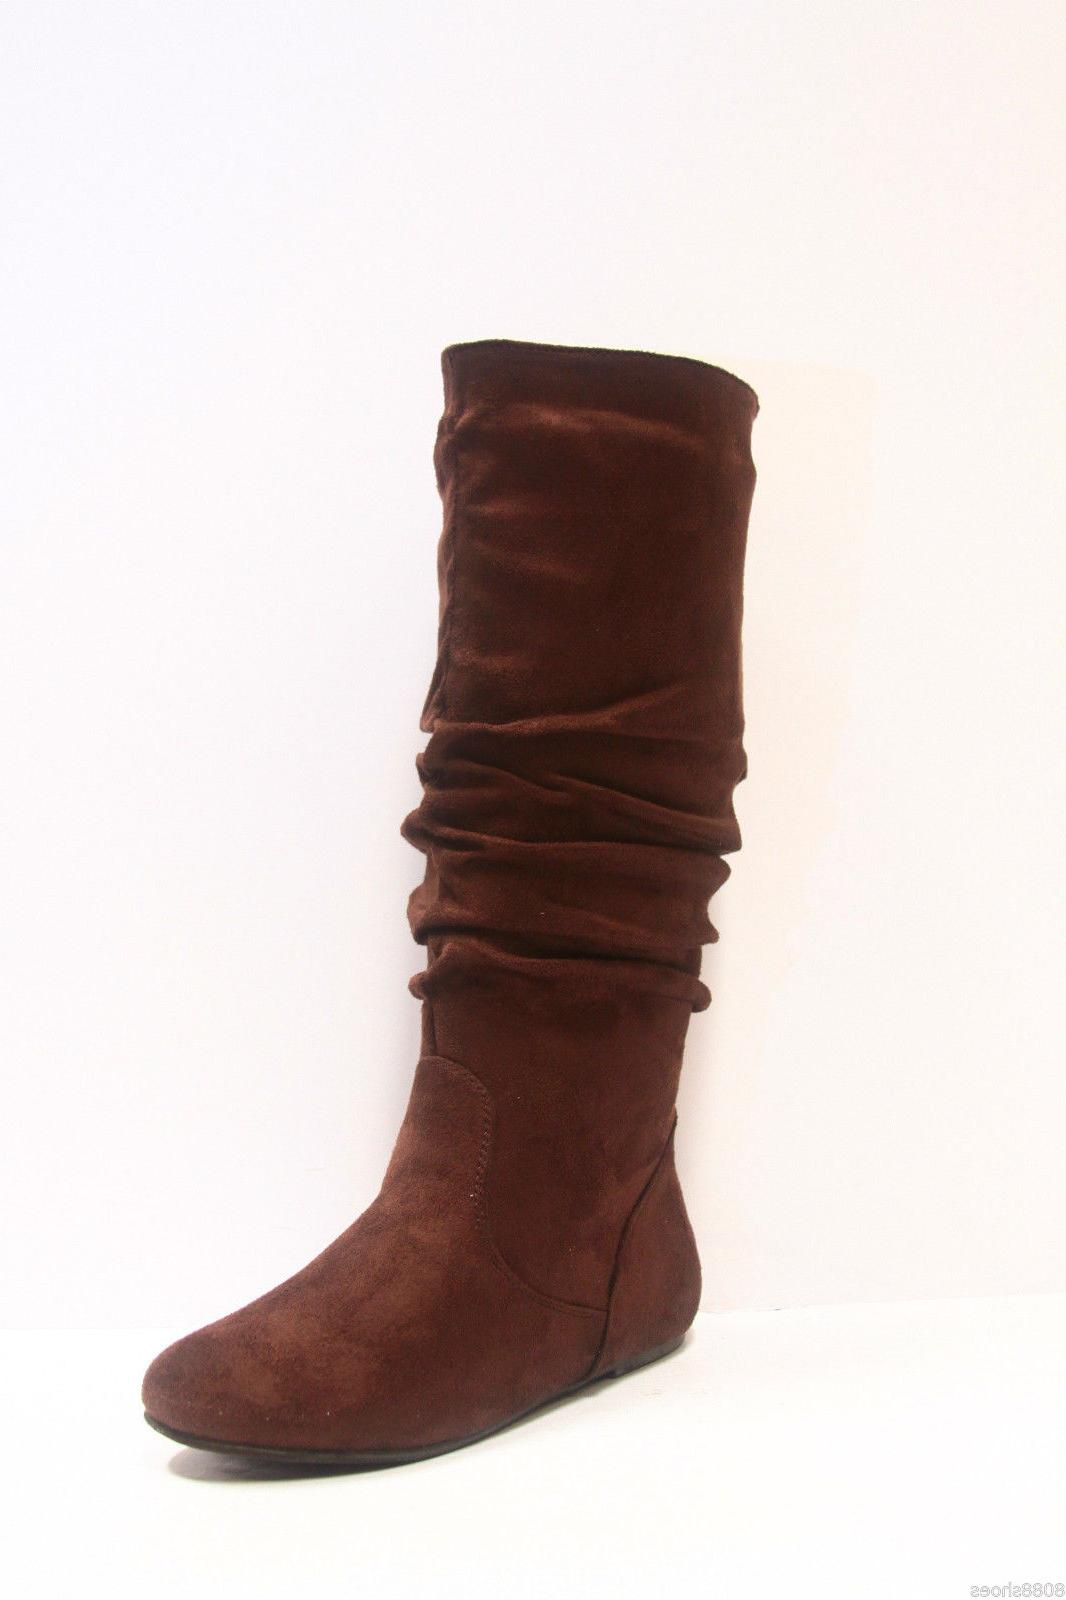 Women's Casual Flat Mid Calf Round Toe Boot shoes